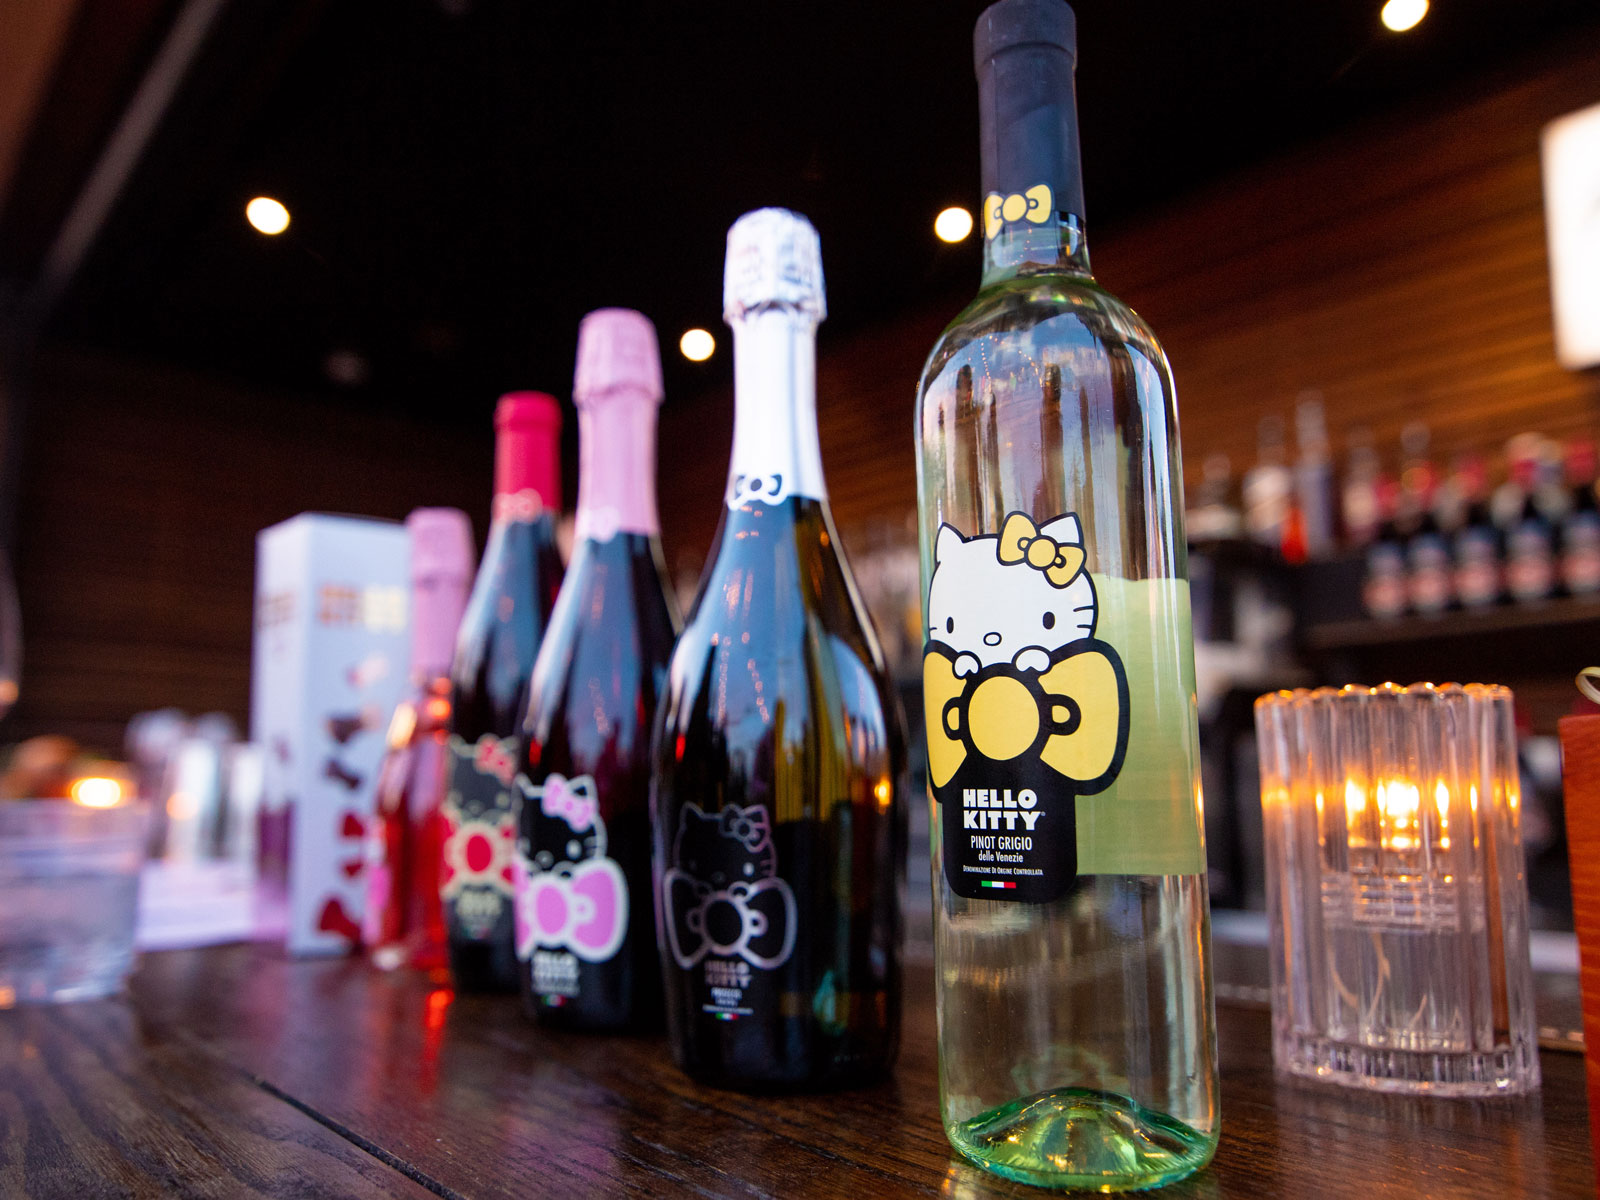 hello-kitty-wines-2018-FT-BLOG0818.jpg